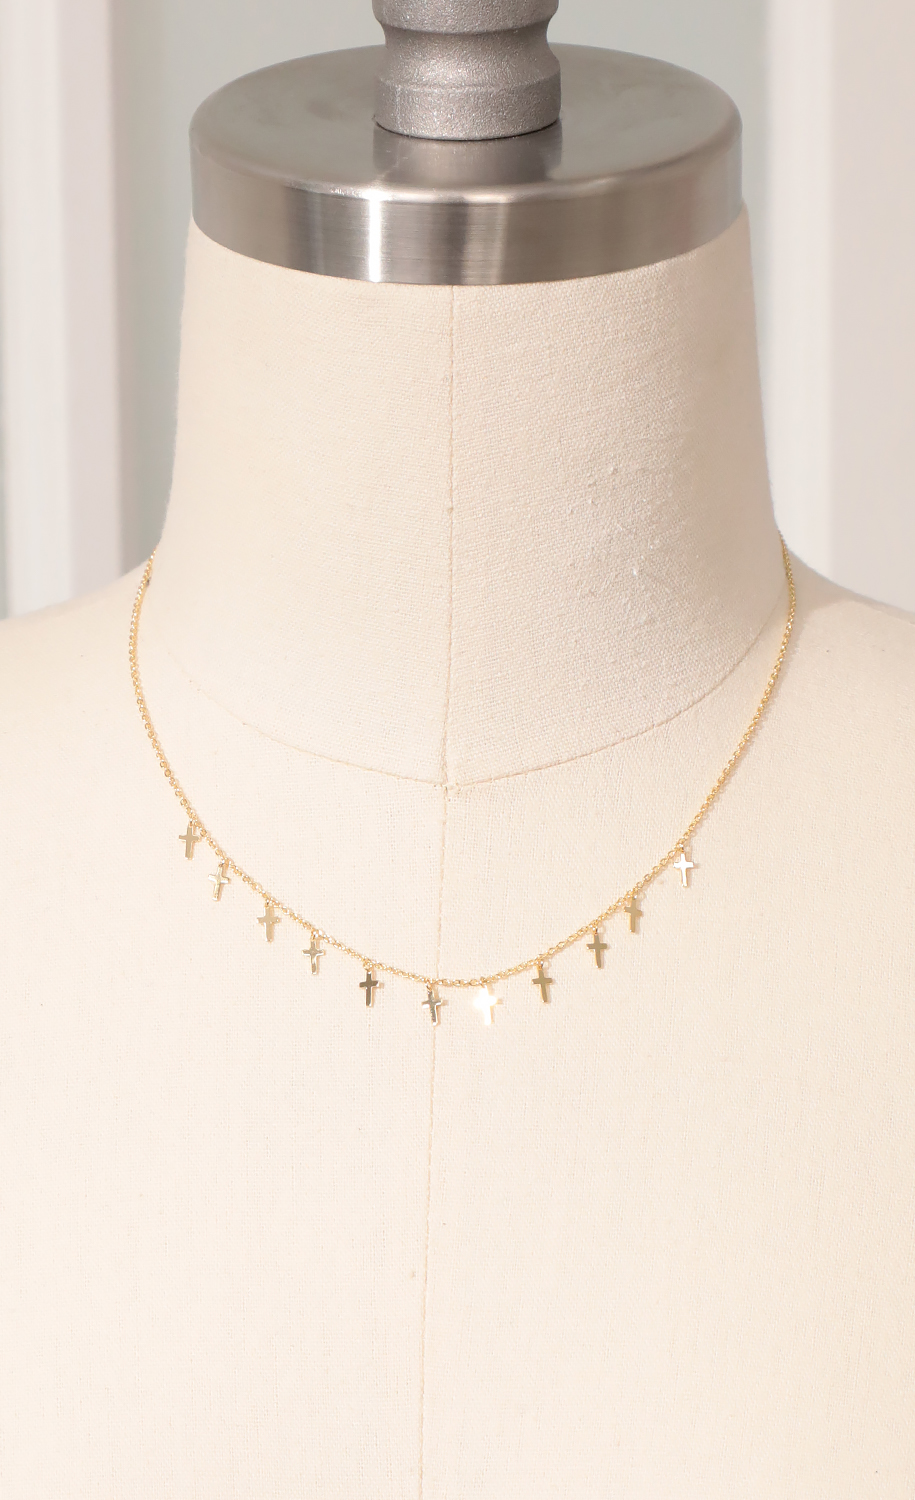 Dainty Cross Charm Necklace in Gold